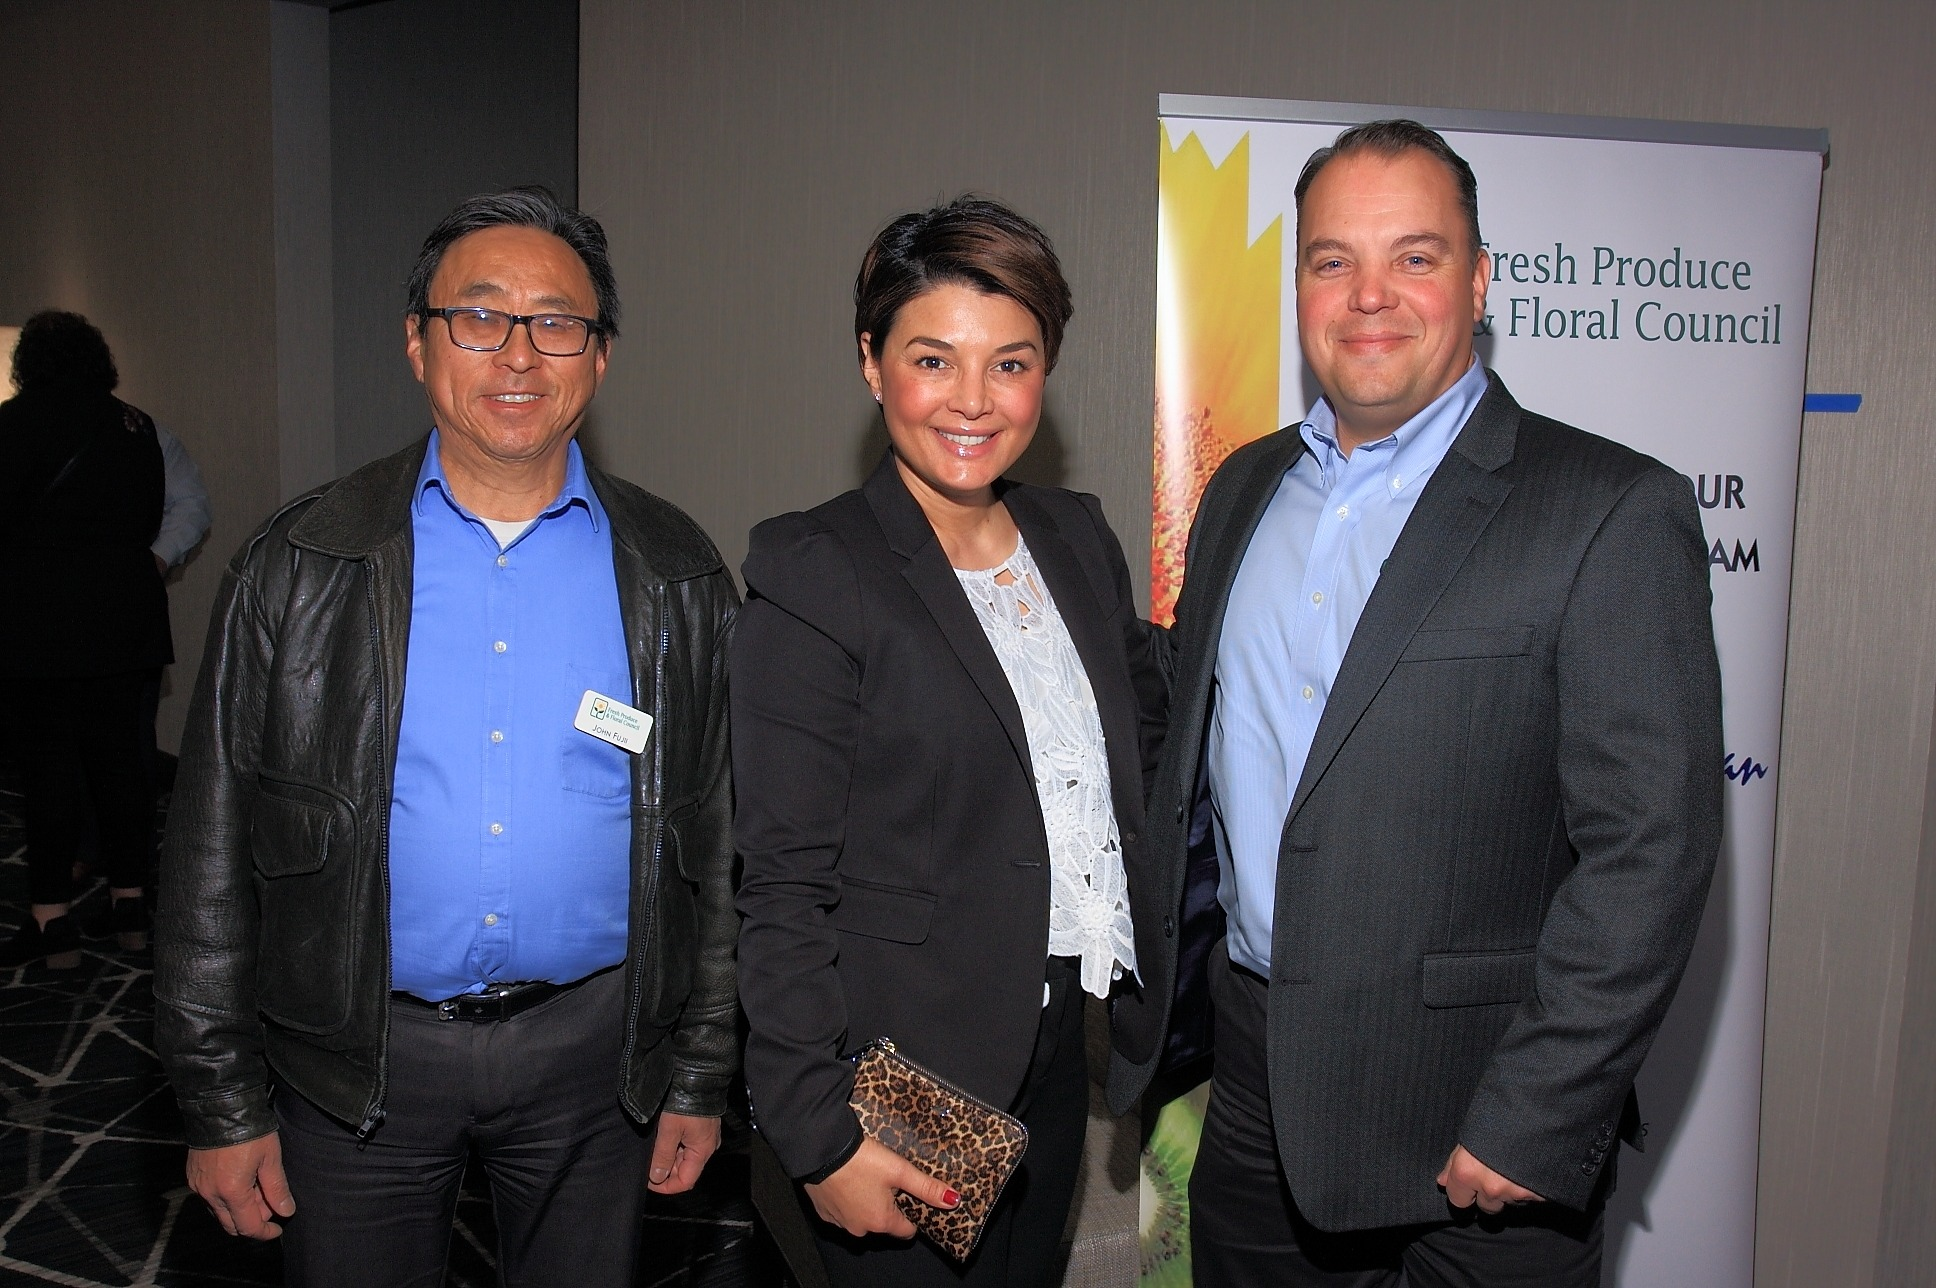 John Fujii from Gelson's with Sonia Sigur of Melissa's and Kraig Loomis of GreenFruit Avocados